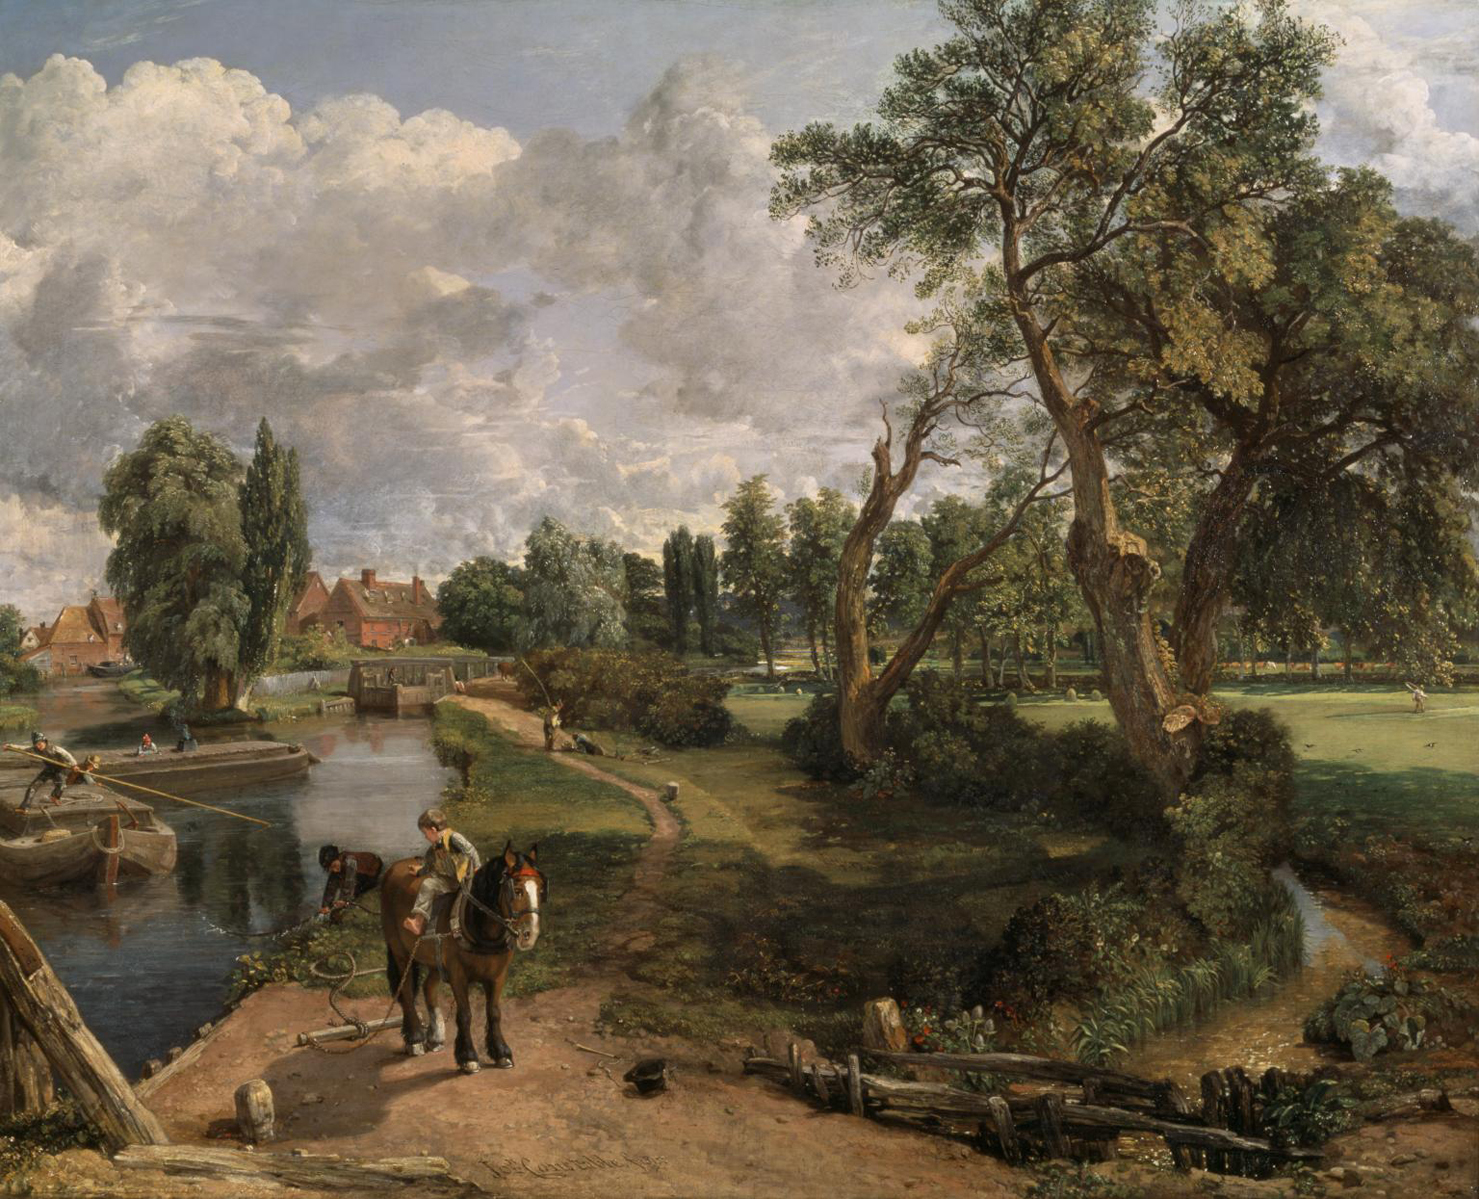 Flatford Mill ('Scene on a Navigable River') 1816-7 John Constable 1776-1837 Bequeathed by Miss Isabel Constable as the gift of Maria Louisa, Isabel and Lionel Bicknell Constable 1888 http://www.tate.org.uk/art/work/N01273